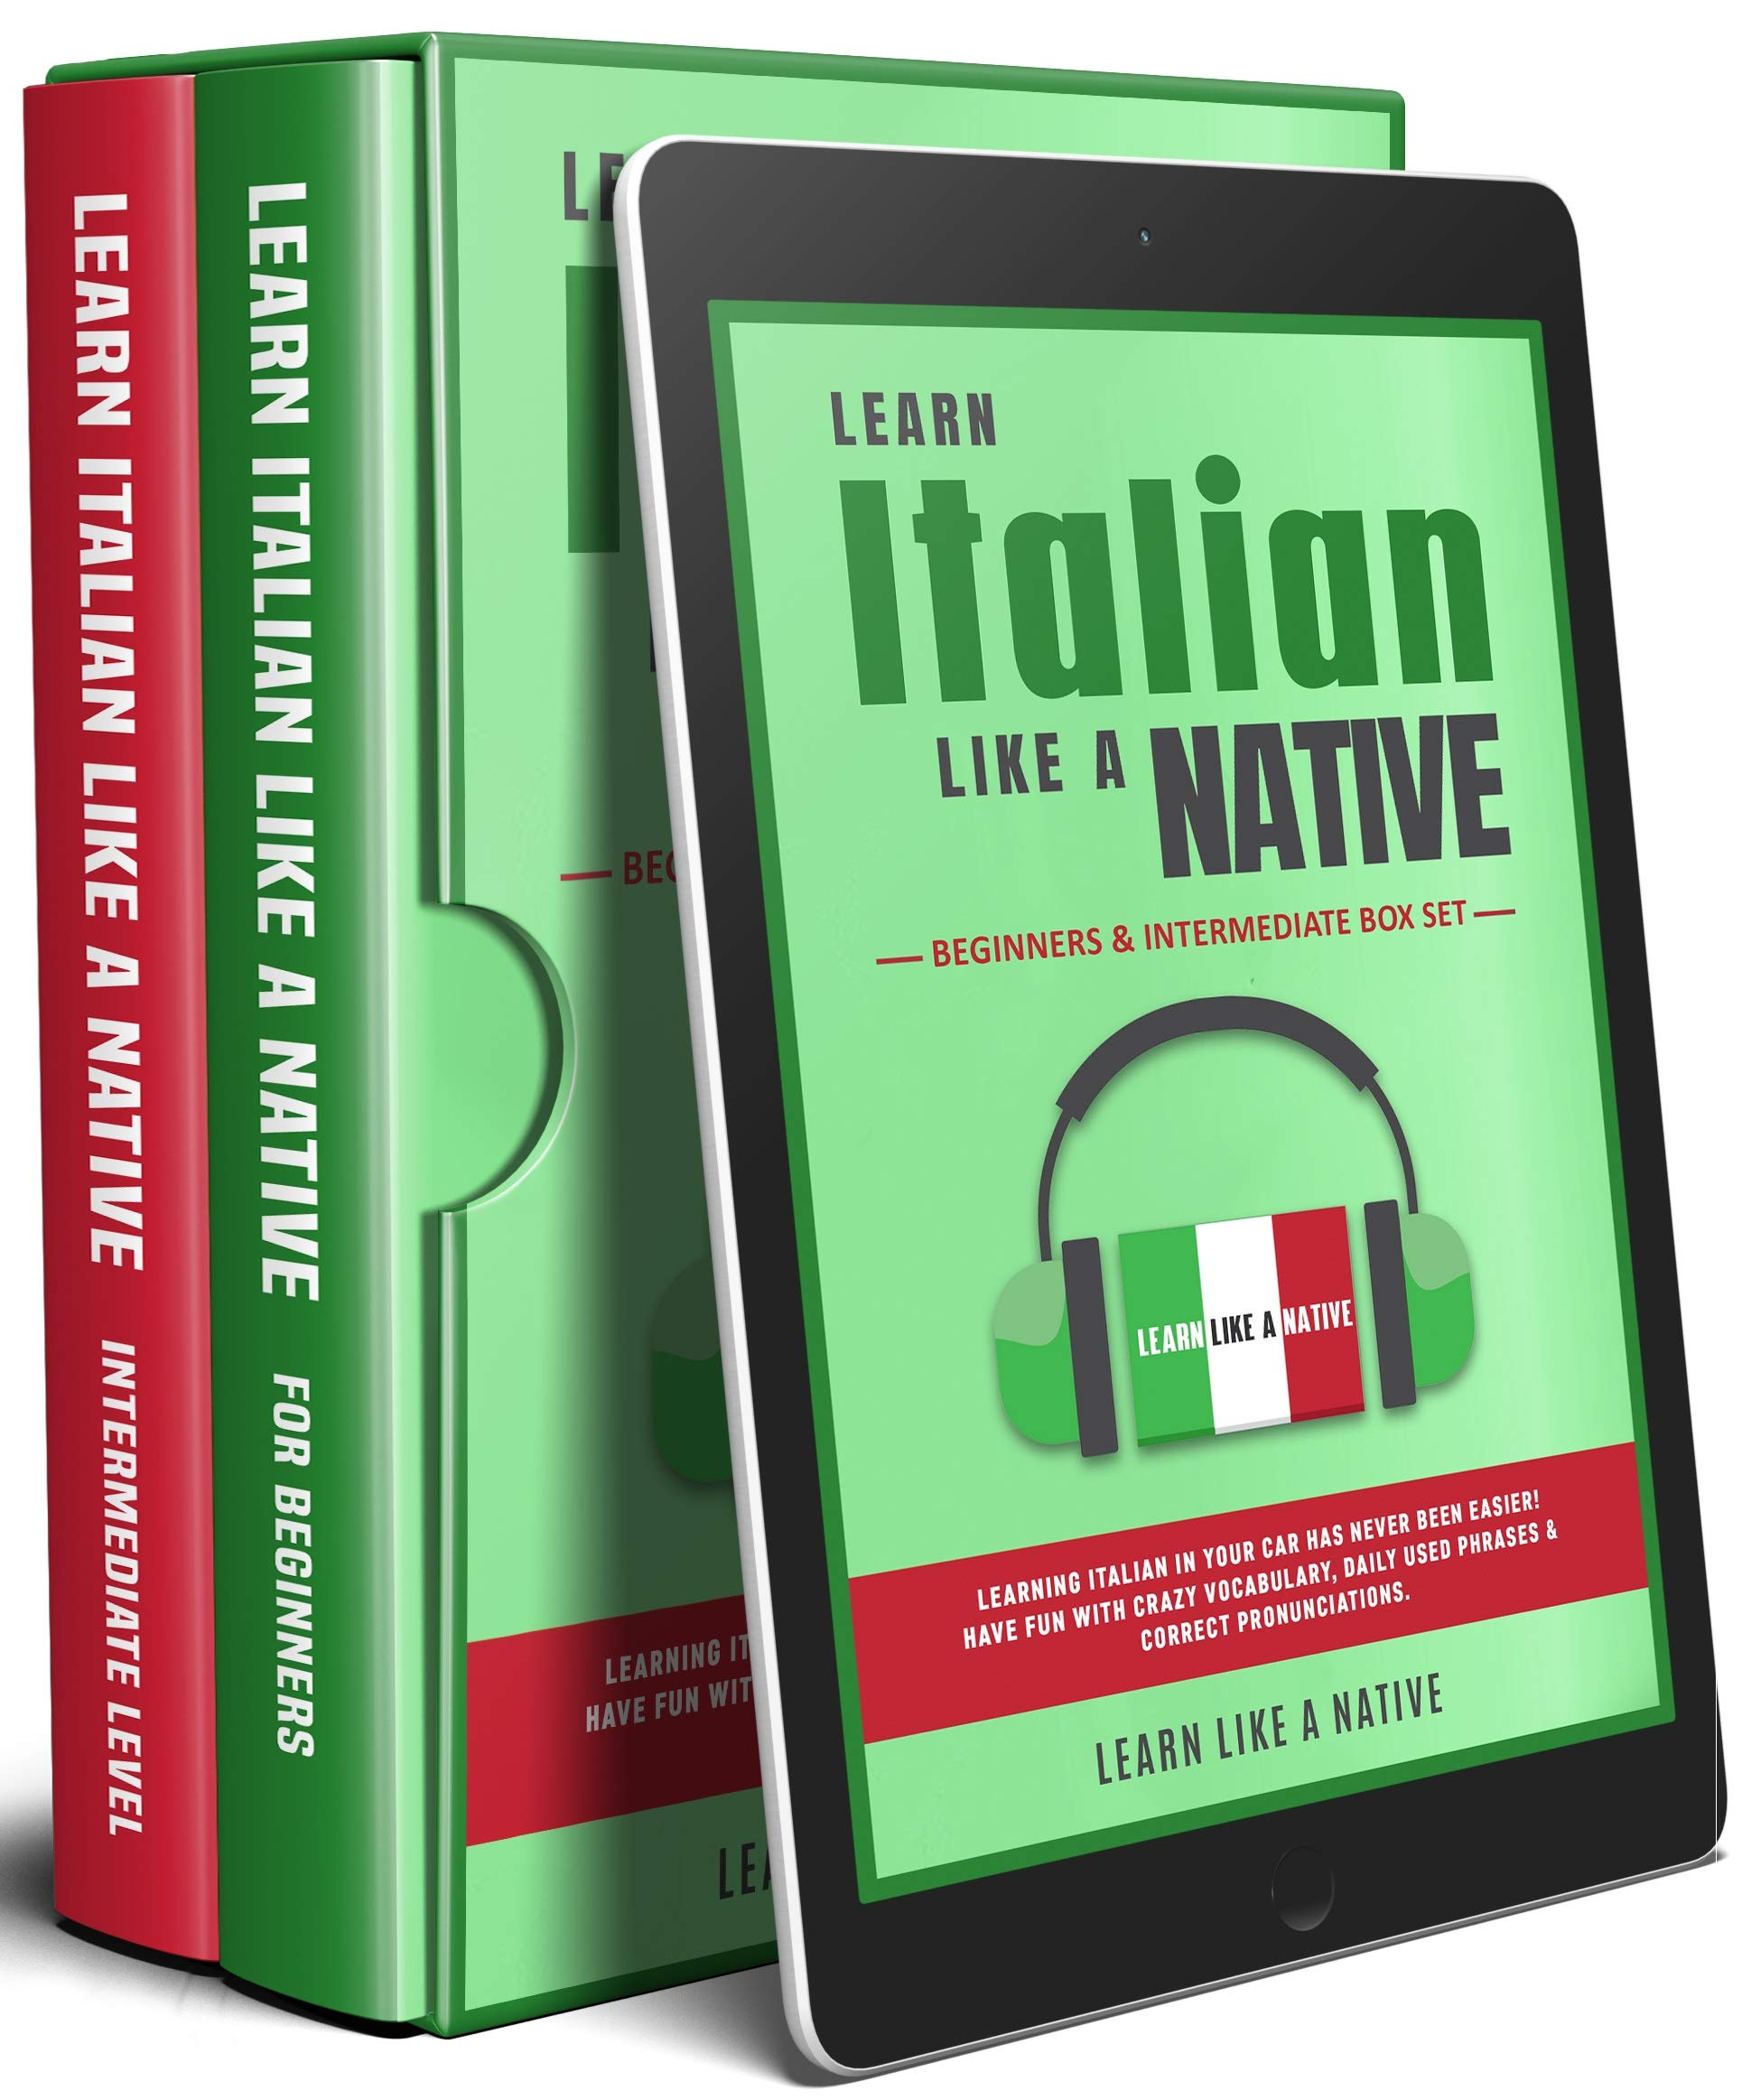 Learn Italian Like A Native Beginners Intermediate Box Set Learning Italian In Your Car Has Never Been Easier Have Buy Online In Colombia At Desertcart